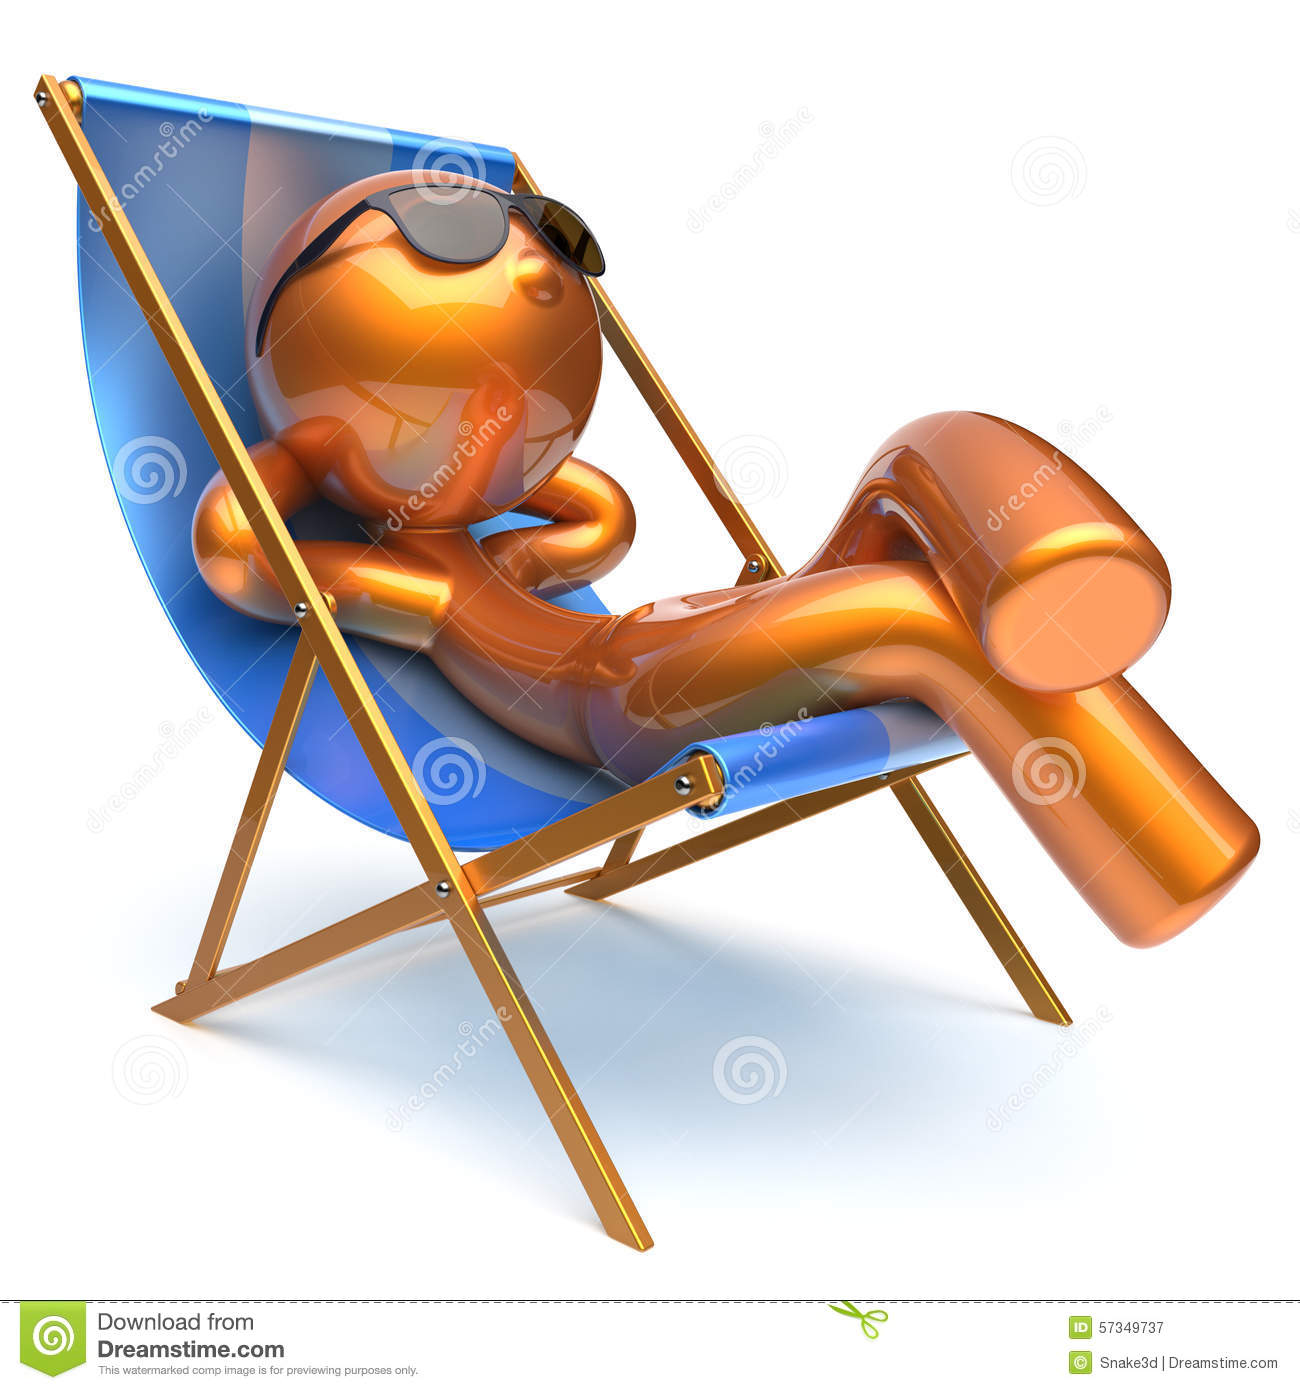 Man Carefree Relaxing Chilling Beach Deck Chair Outdoor Icon Stock Illustration Image